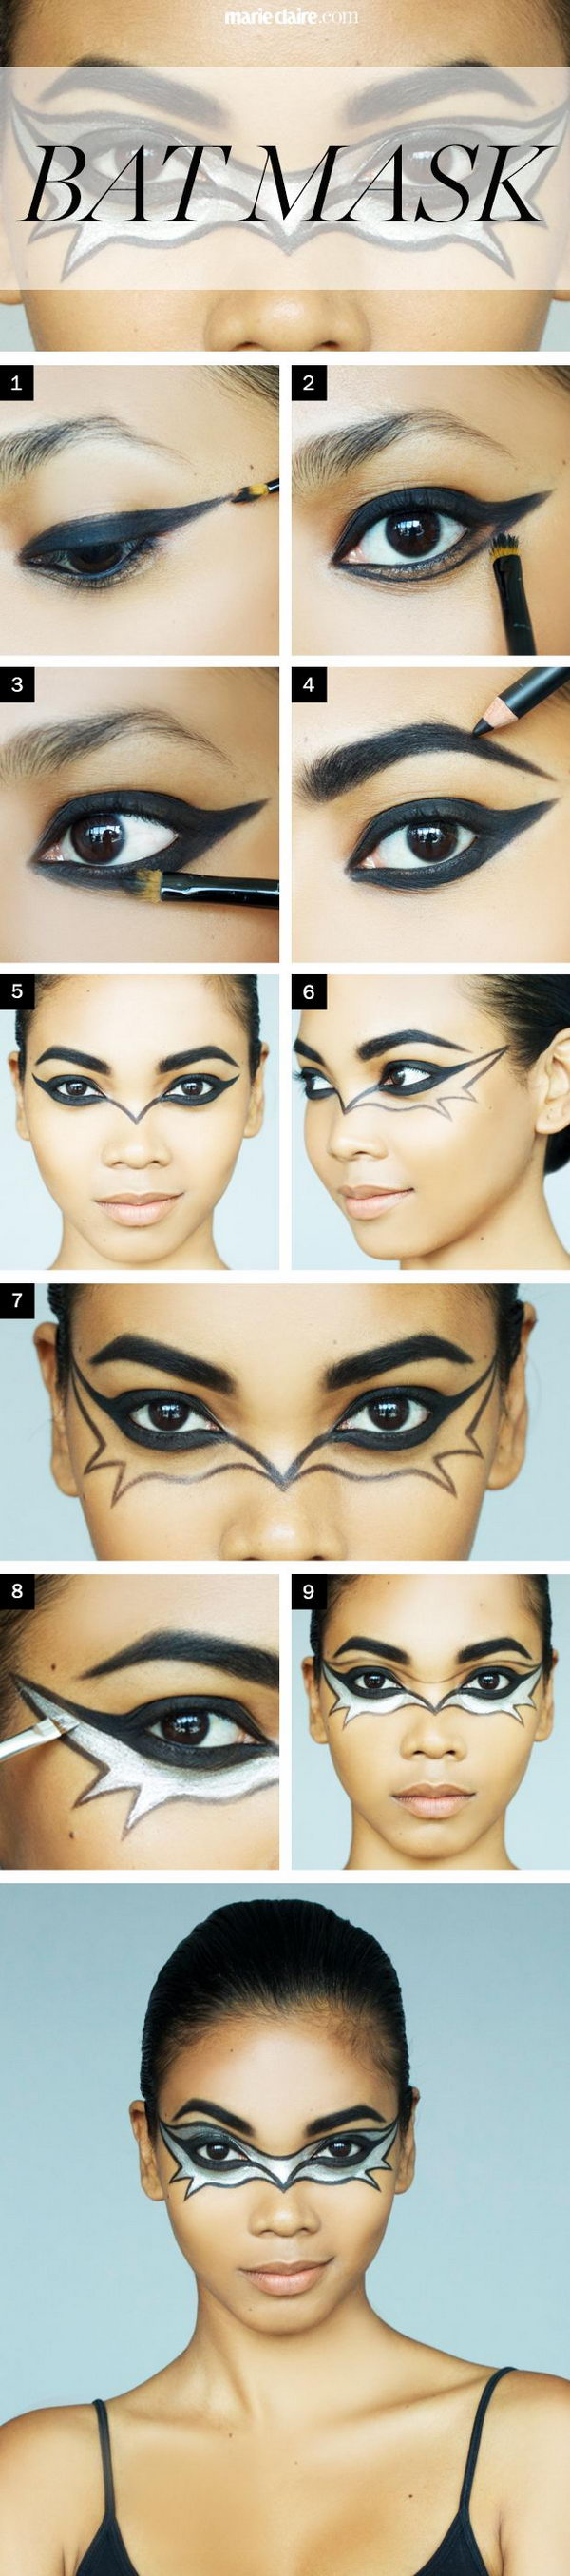 Bat Mask Makeup Tutorial